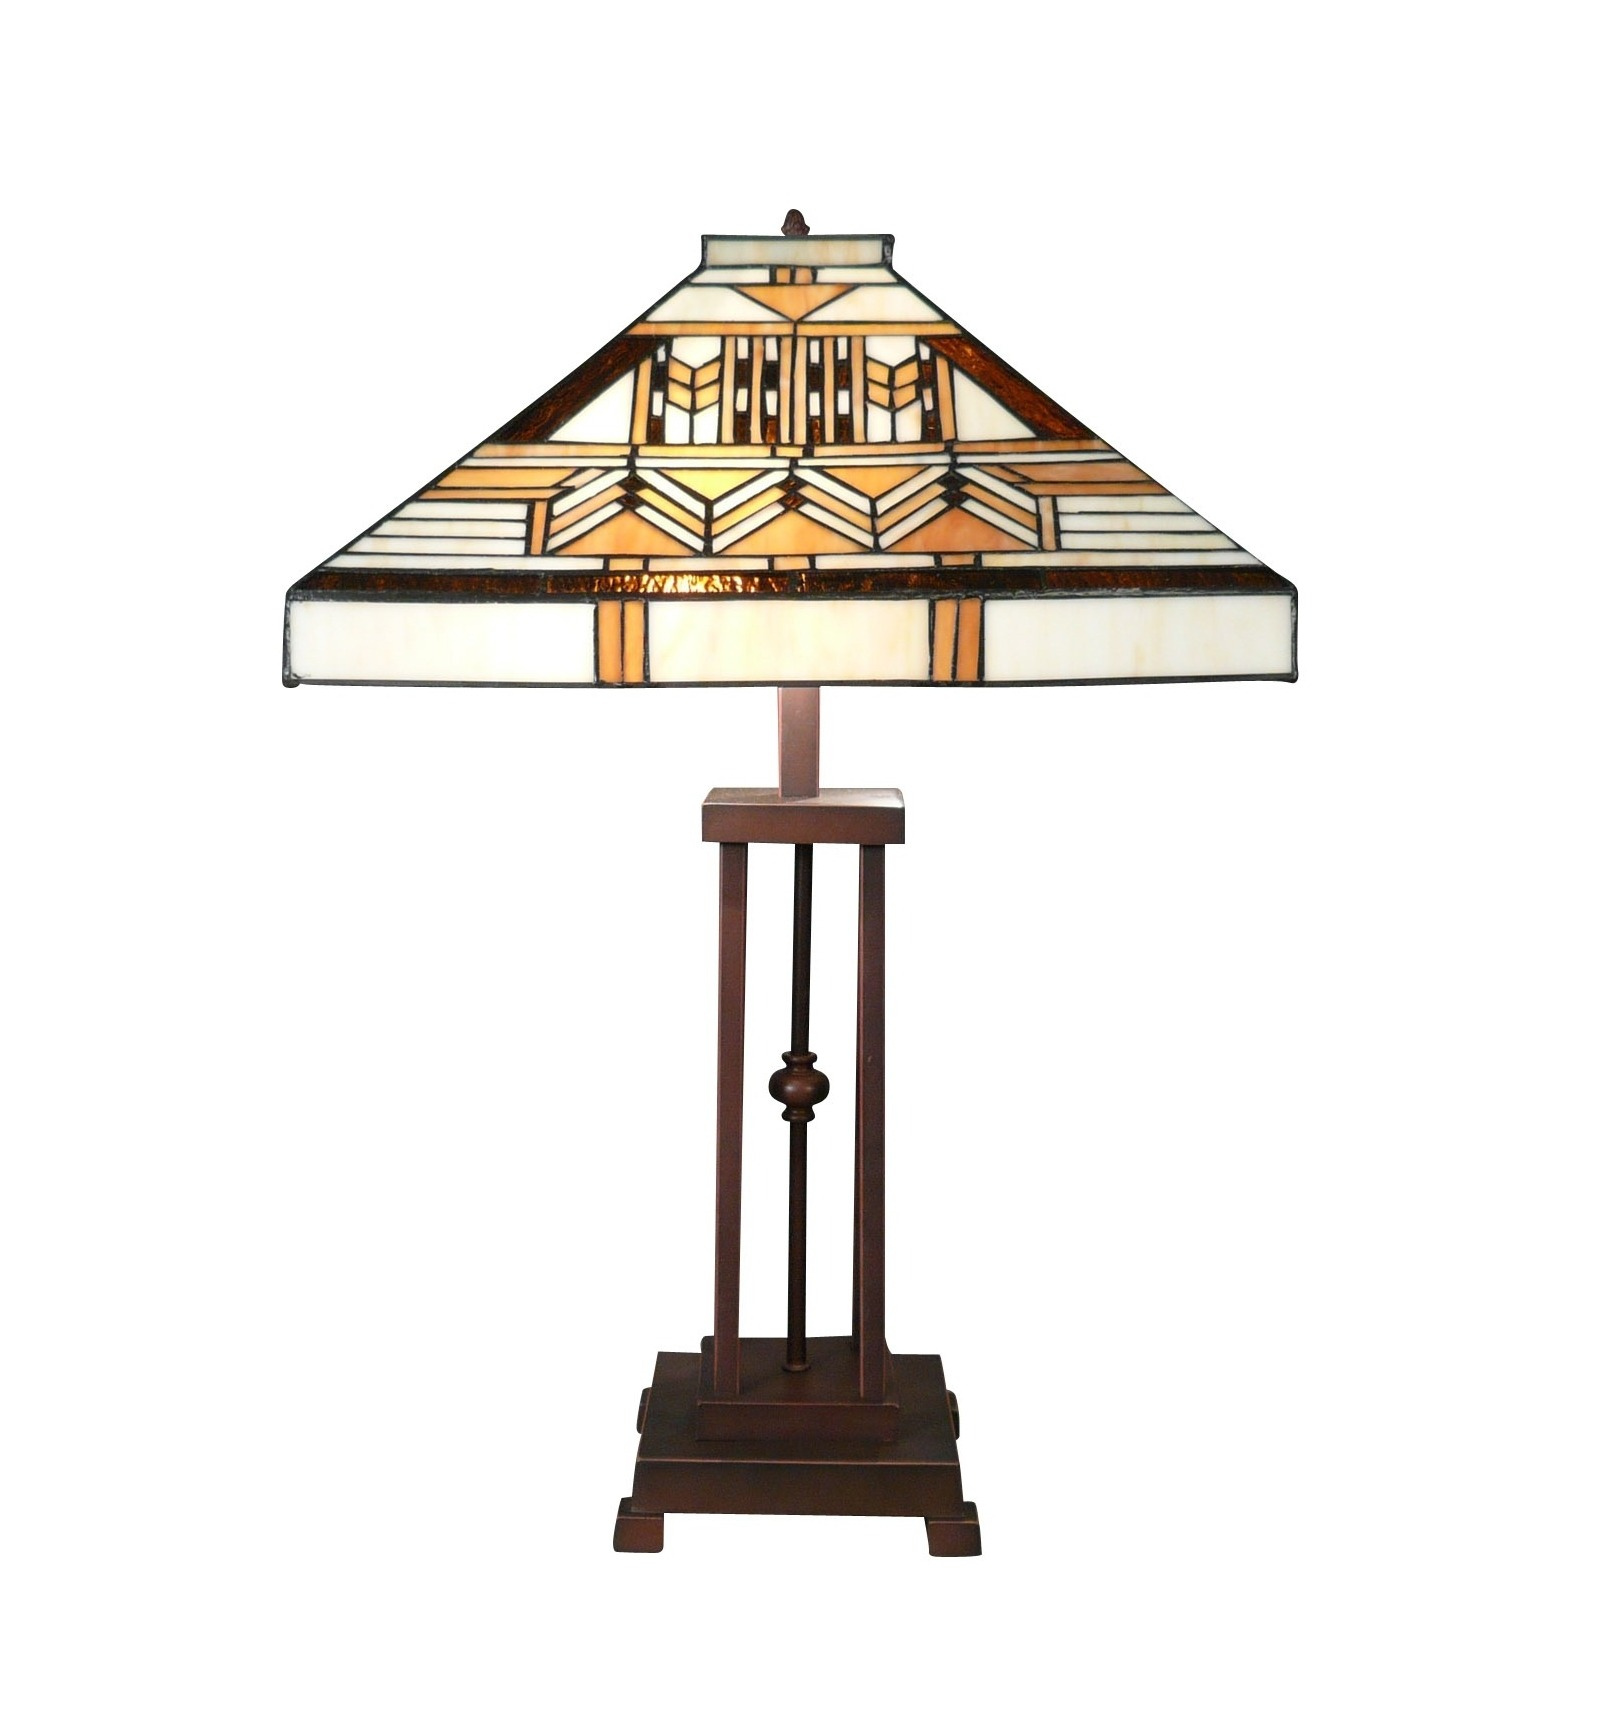 Art Deco Tiffany Lampe aus der Boston Serie - Art Deco Lamp ...